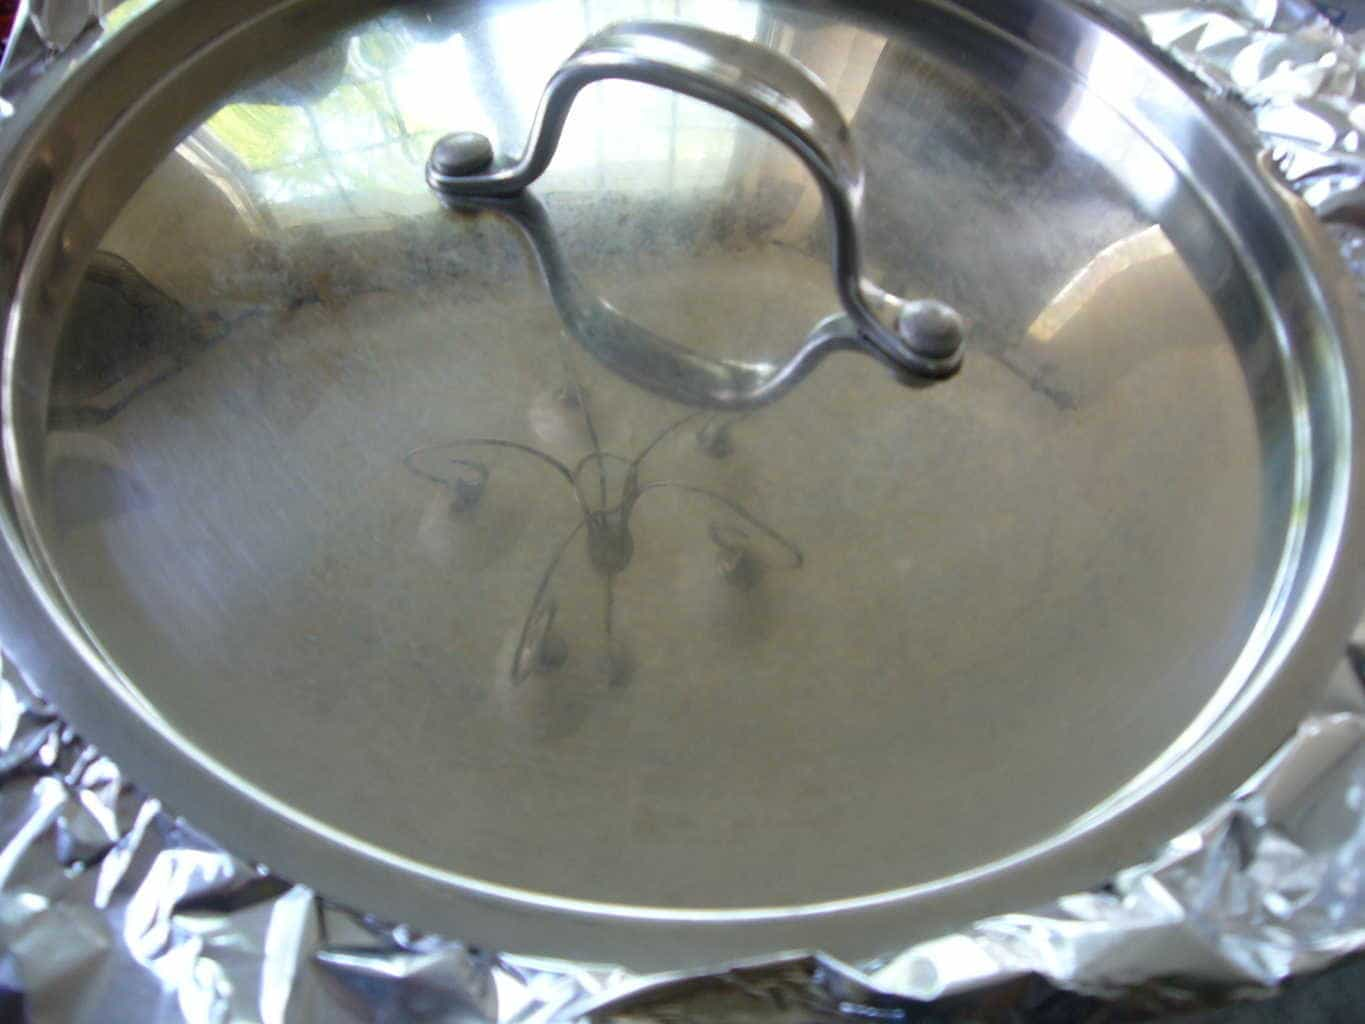 The lid placed over aluminum sheets and sealed tightly to steam the rice and chicken.